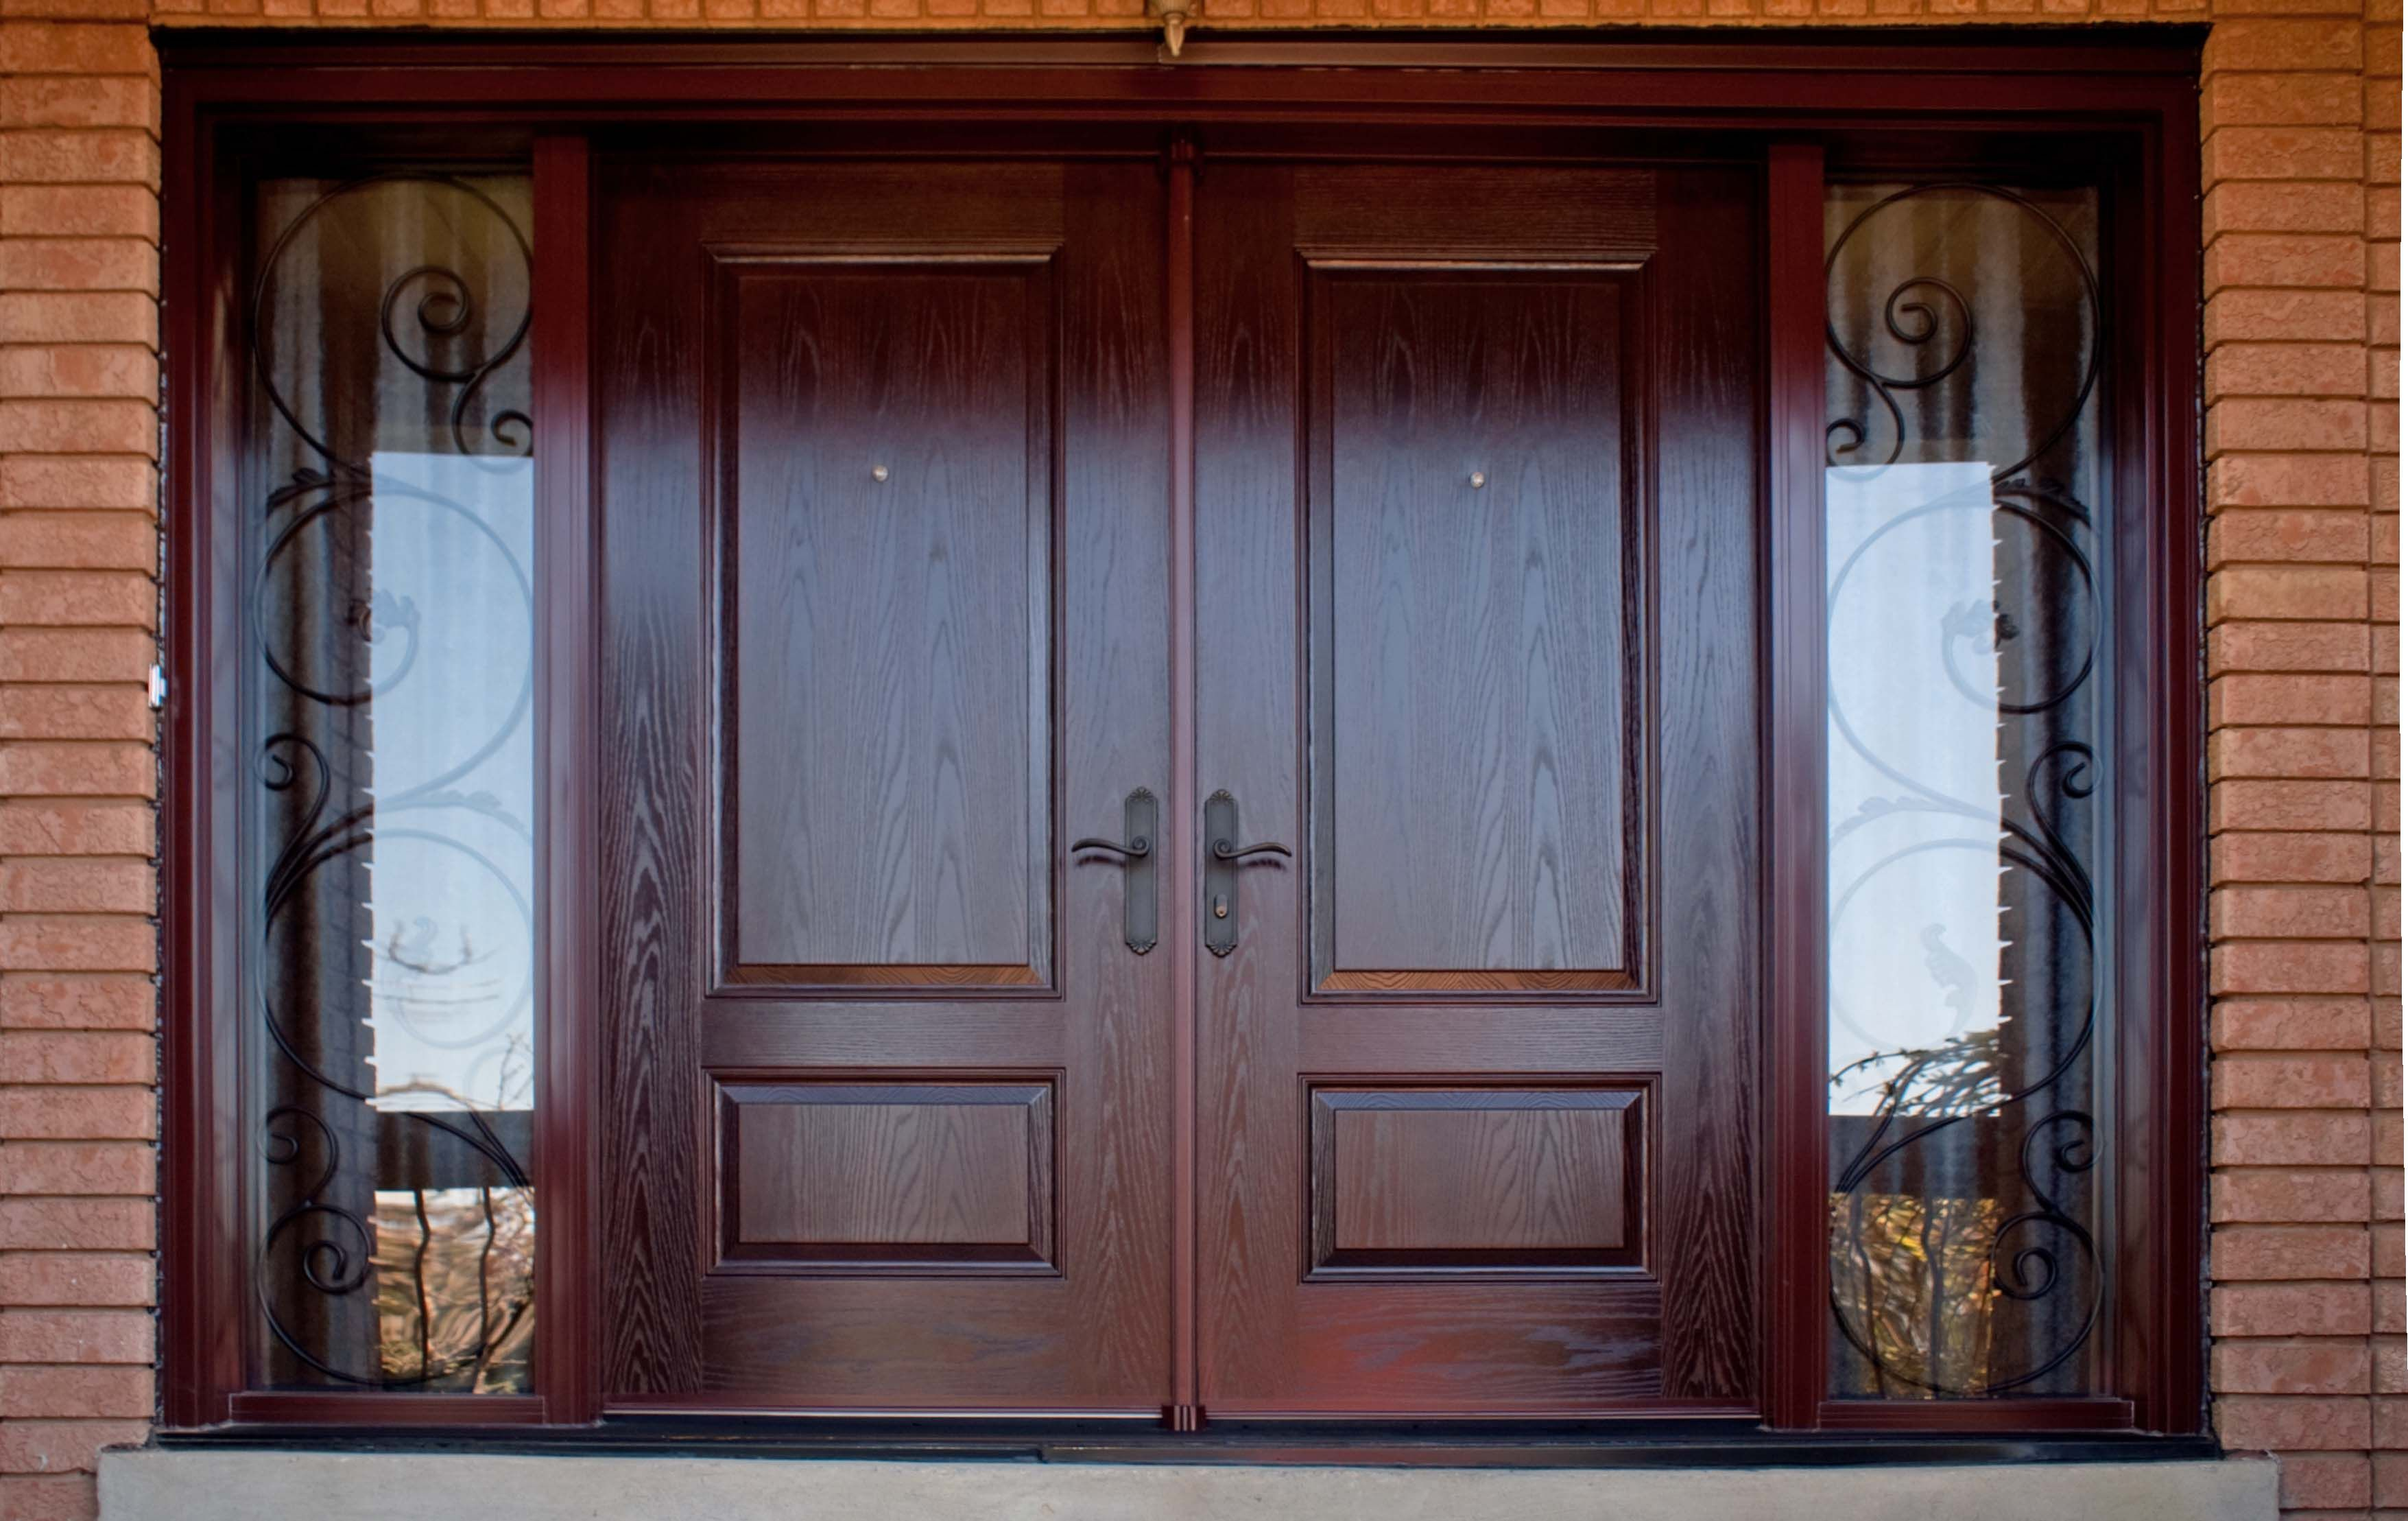 Well liked double modern front door 2 panels hollow core espresso well liked double modern front door 2 panels hollow core espresso finished between clear glass rubansaba